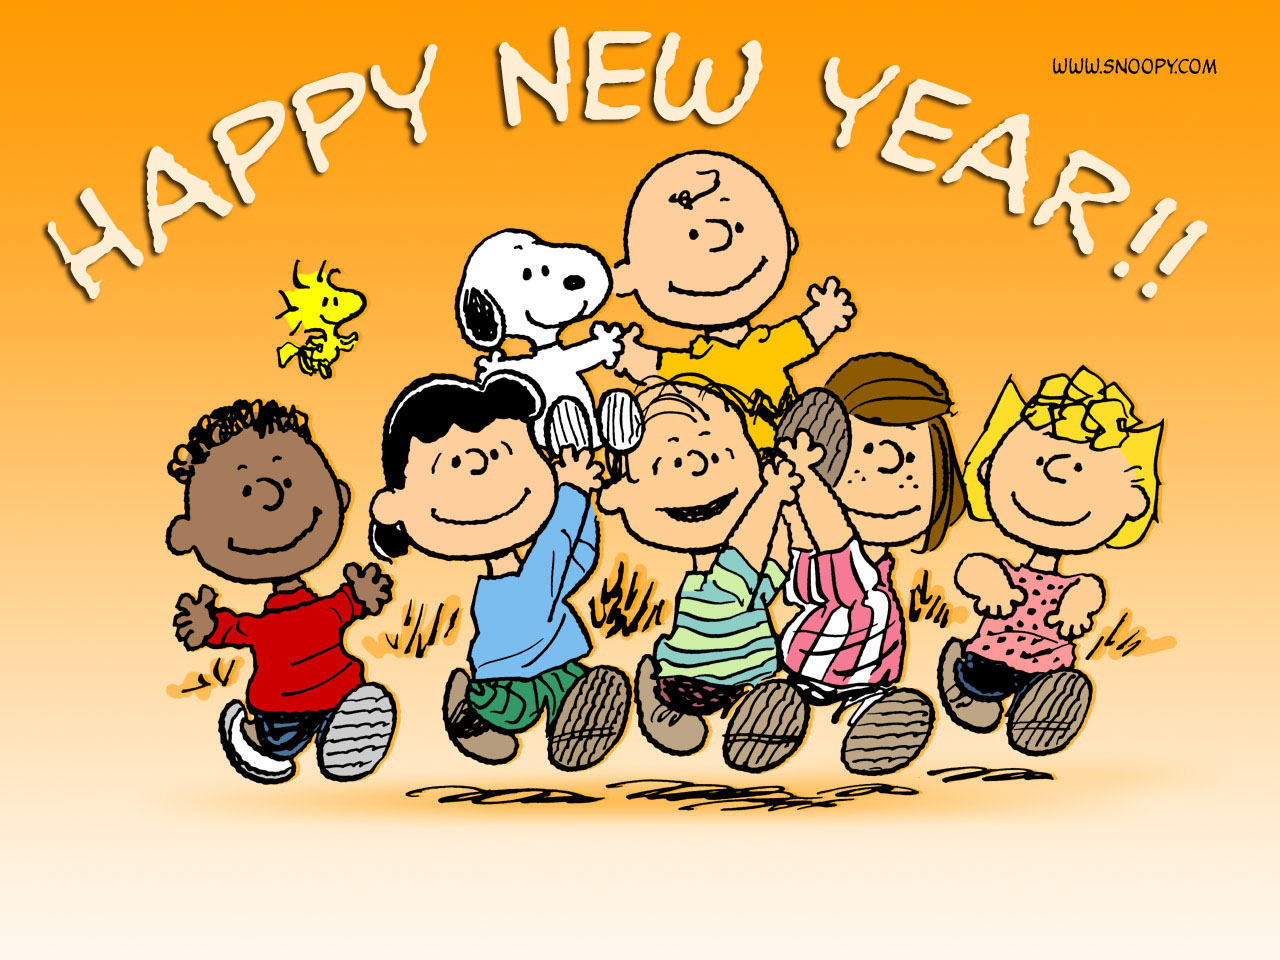 funny new year sms sweet and nice new year sms and text messages. 1280 x 960.Nice Happy New Year Text Messages